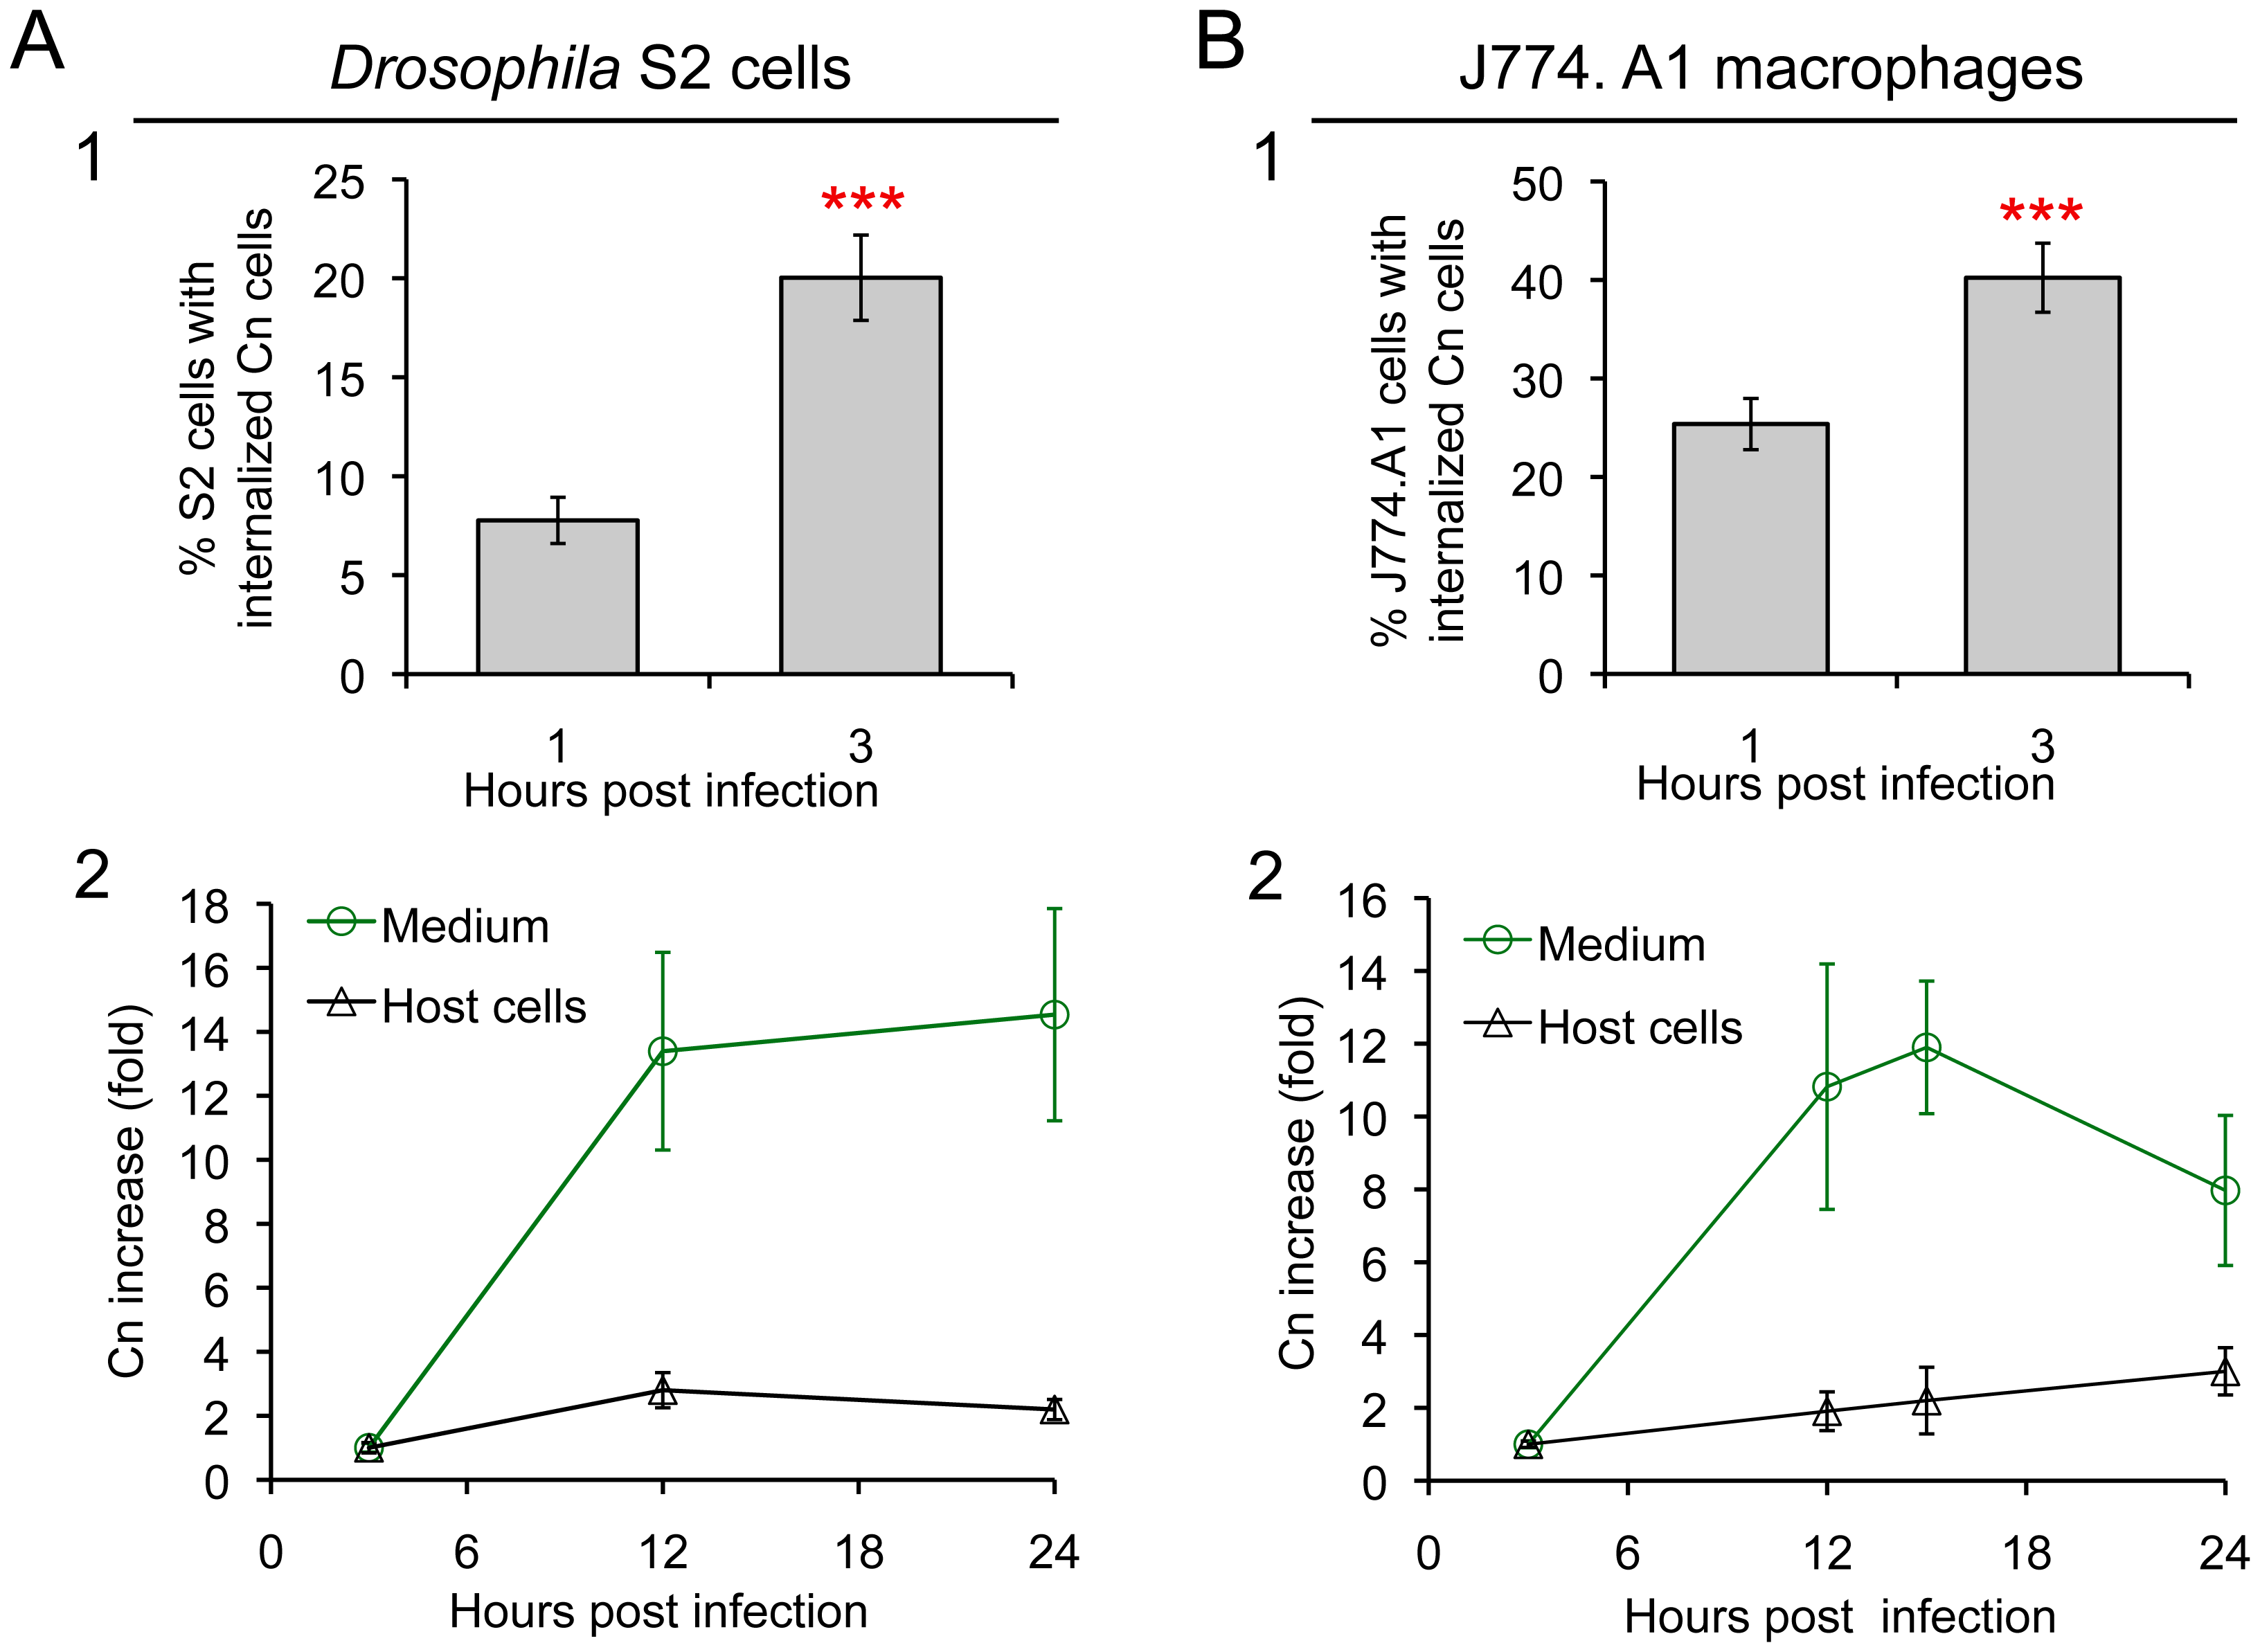 <i>Drosophila</i> S2 cells and murine J774.A1 macrophages support similar patterns of Cn phagocytosis and intracellular replication.